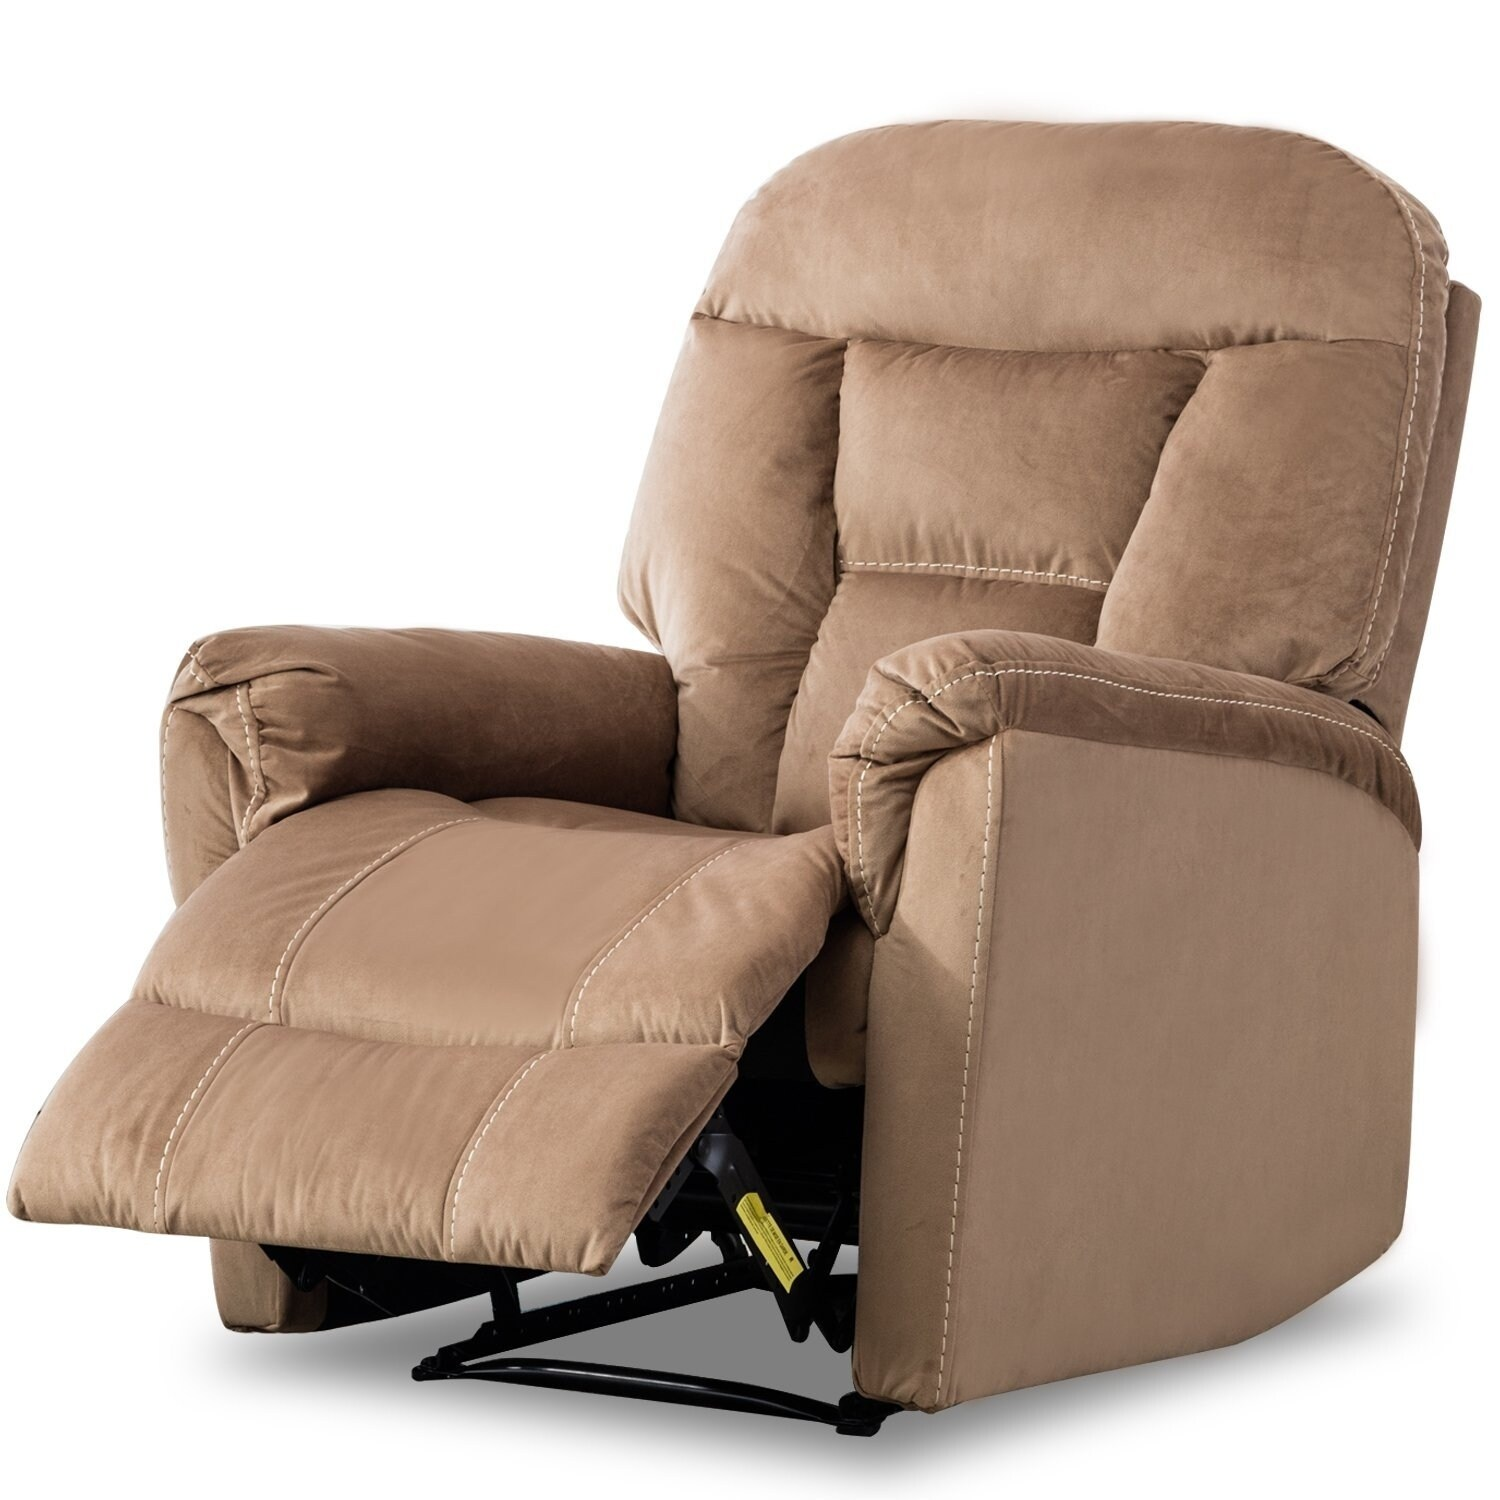 Modern Living Room Recliners Bonzy Manual Recliner Chair Modern Living Room Furniture Durable Fram Mocha